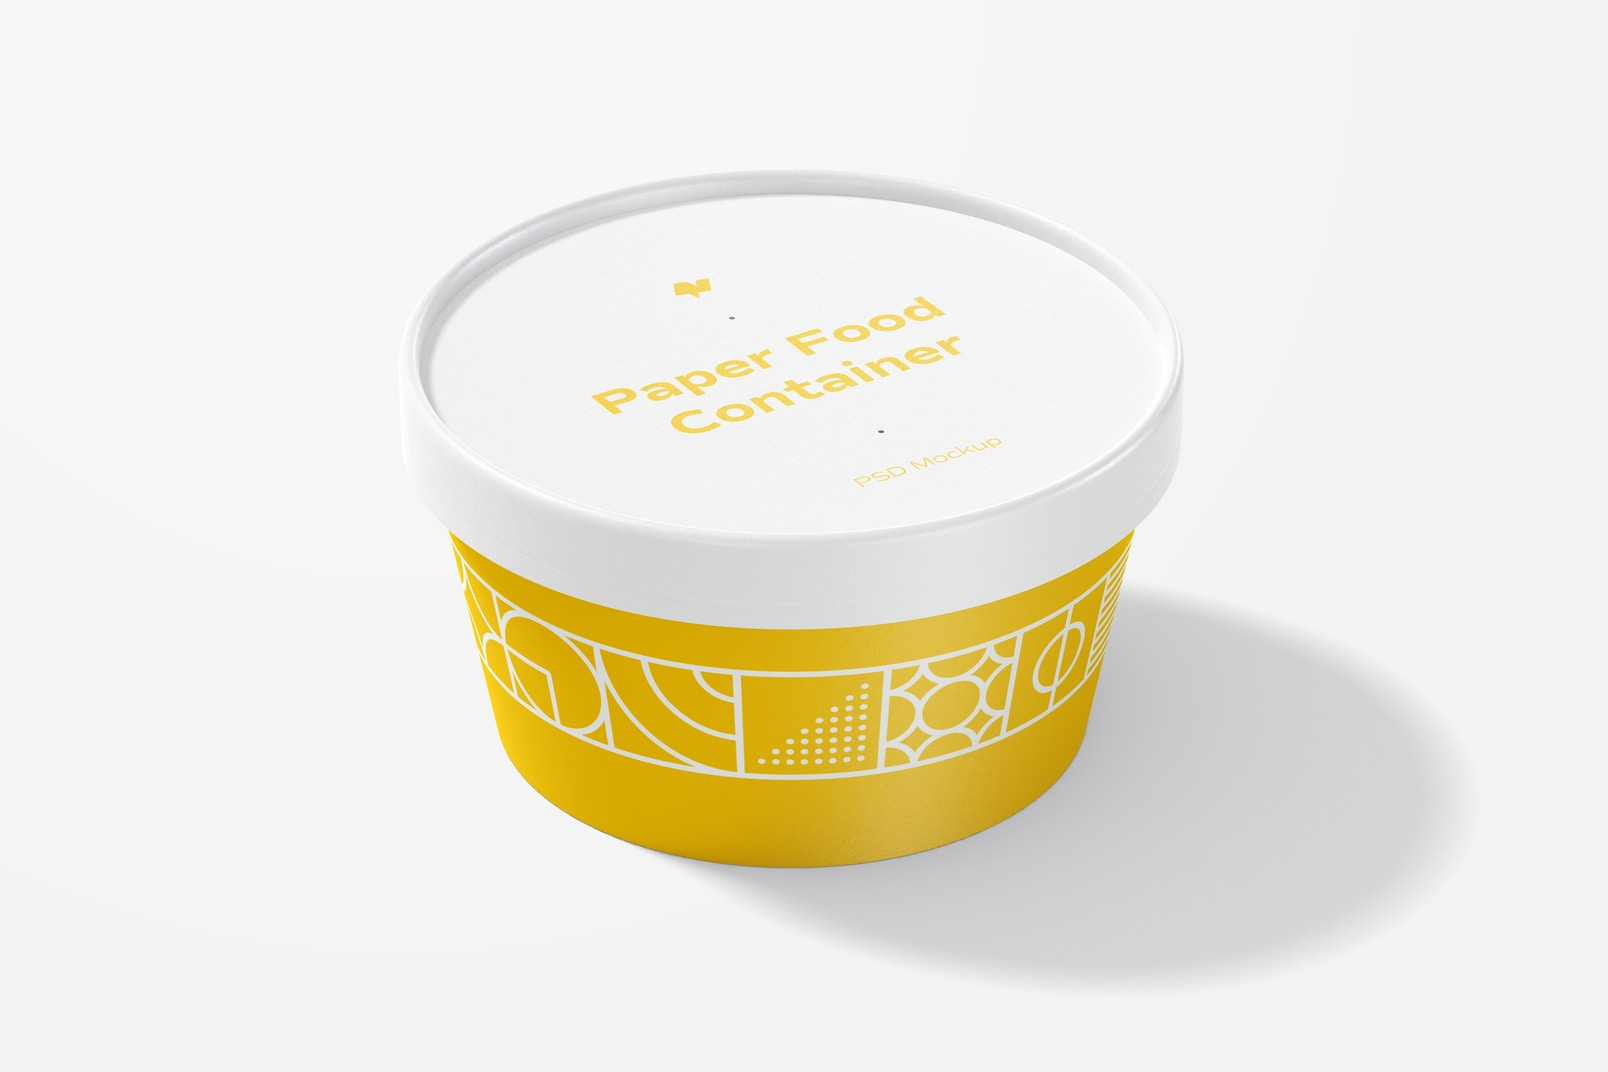 Round Paper Food Container Mockup